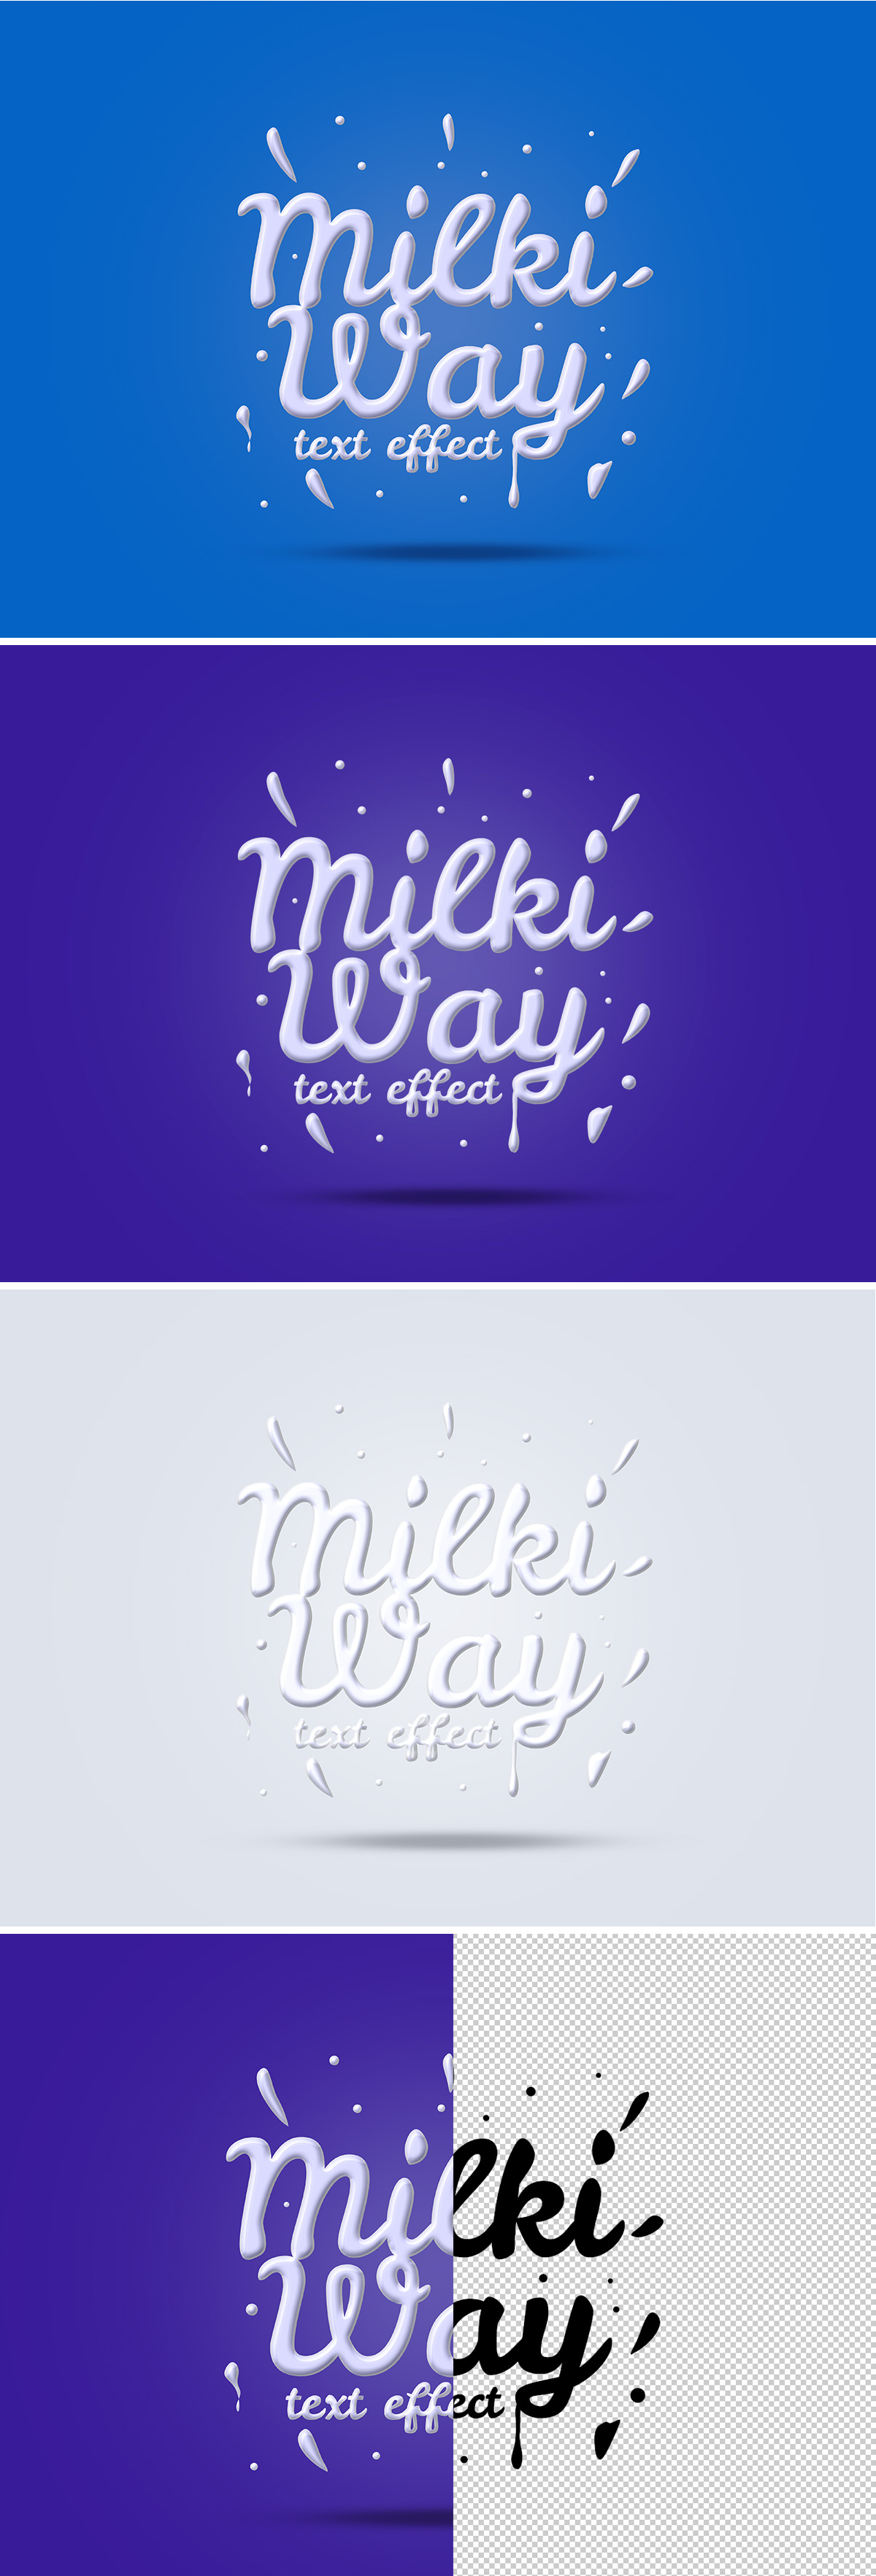 PSD Milk Text Effect